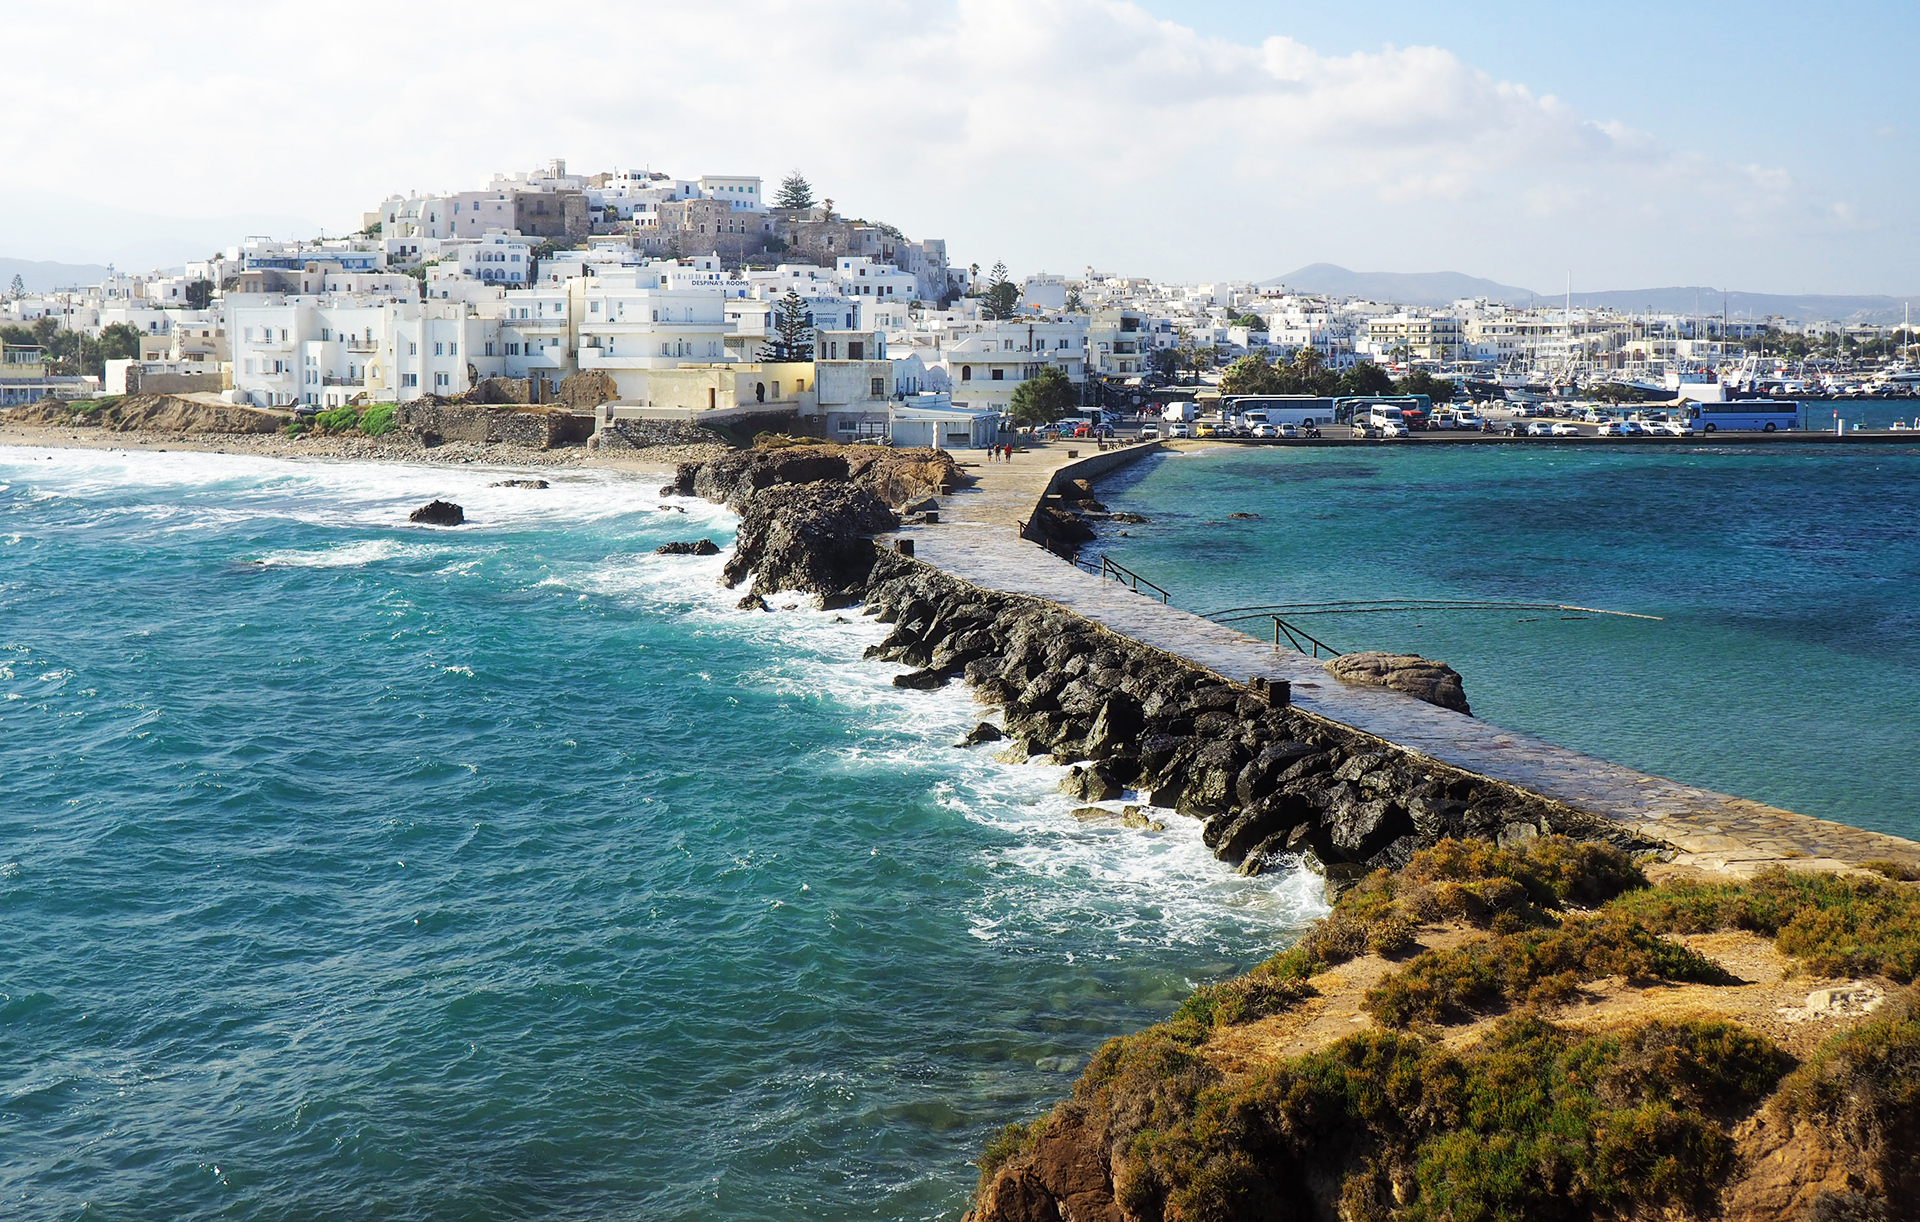 Greek Island Destination - Naxos Island, the manmade causeway and breakwater from Naxos town to the Portara